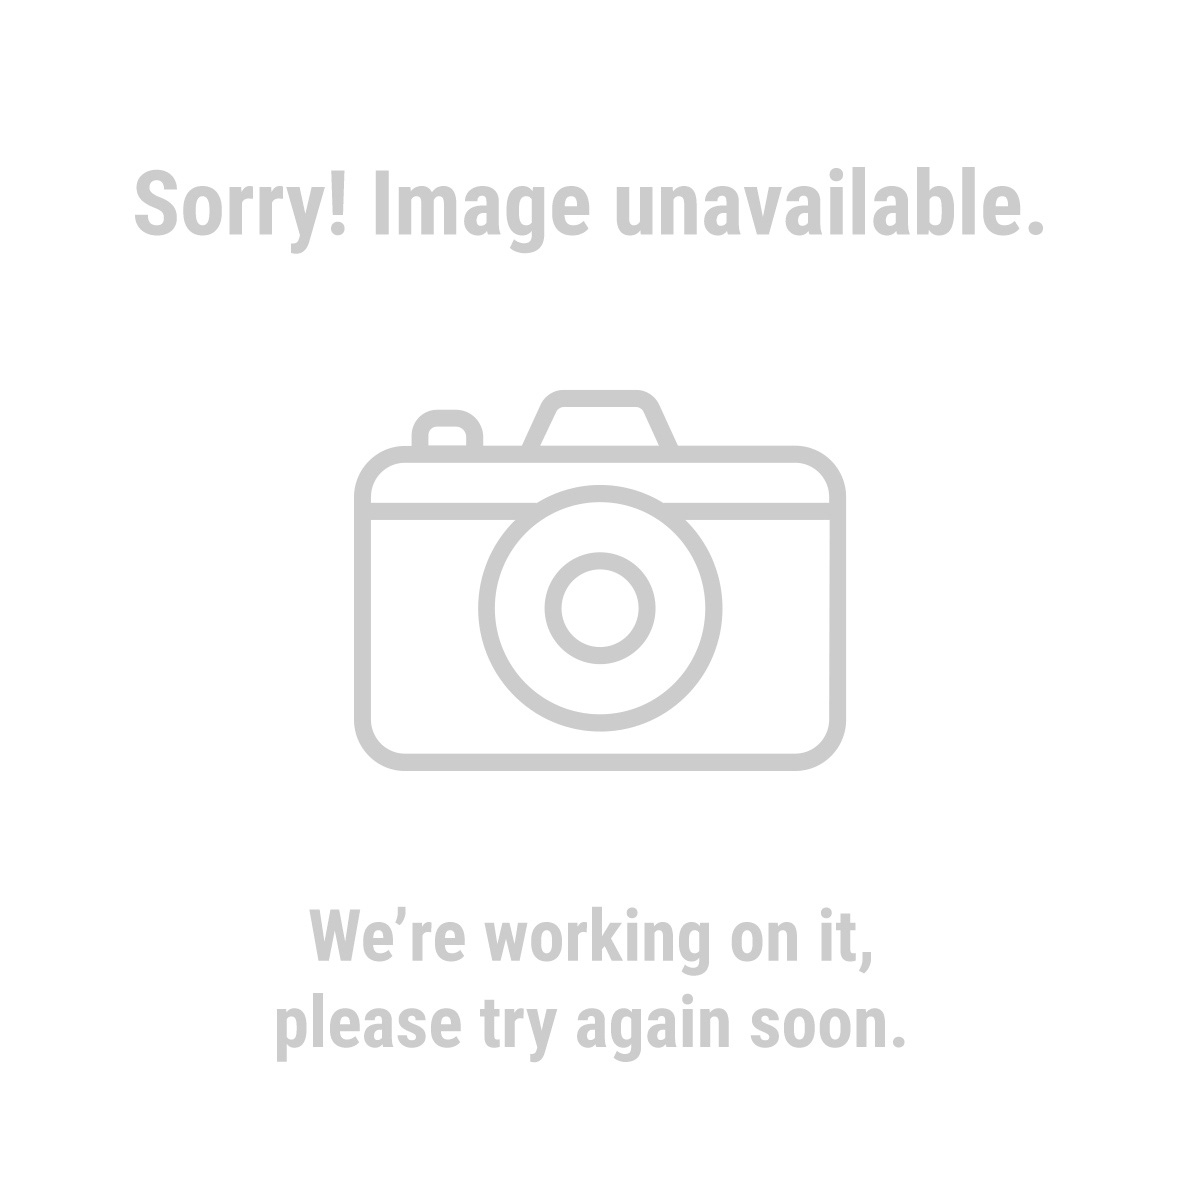 Western Safety 66217 3 Pair Disposable Earplugs